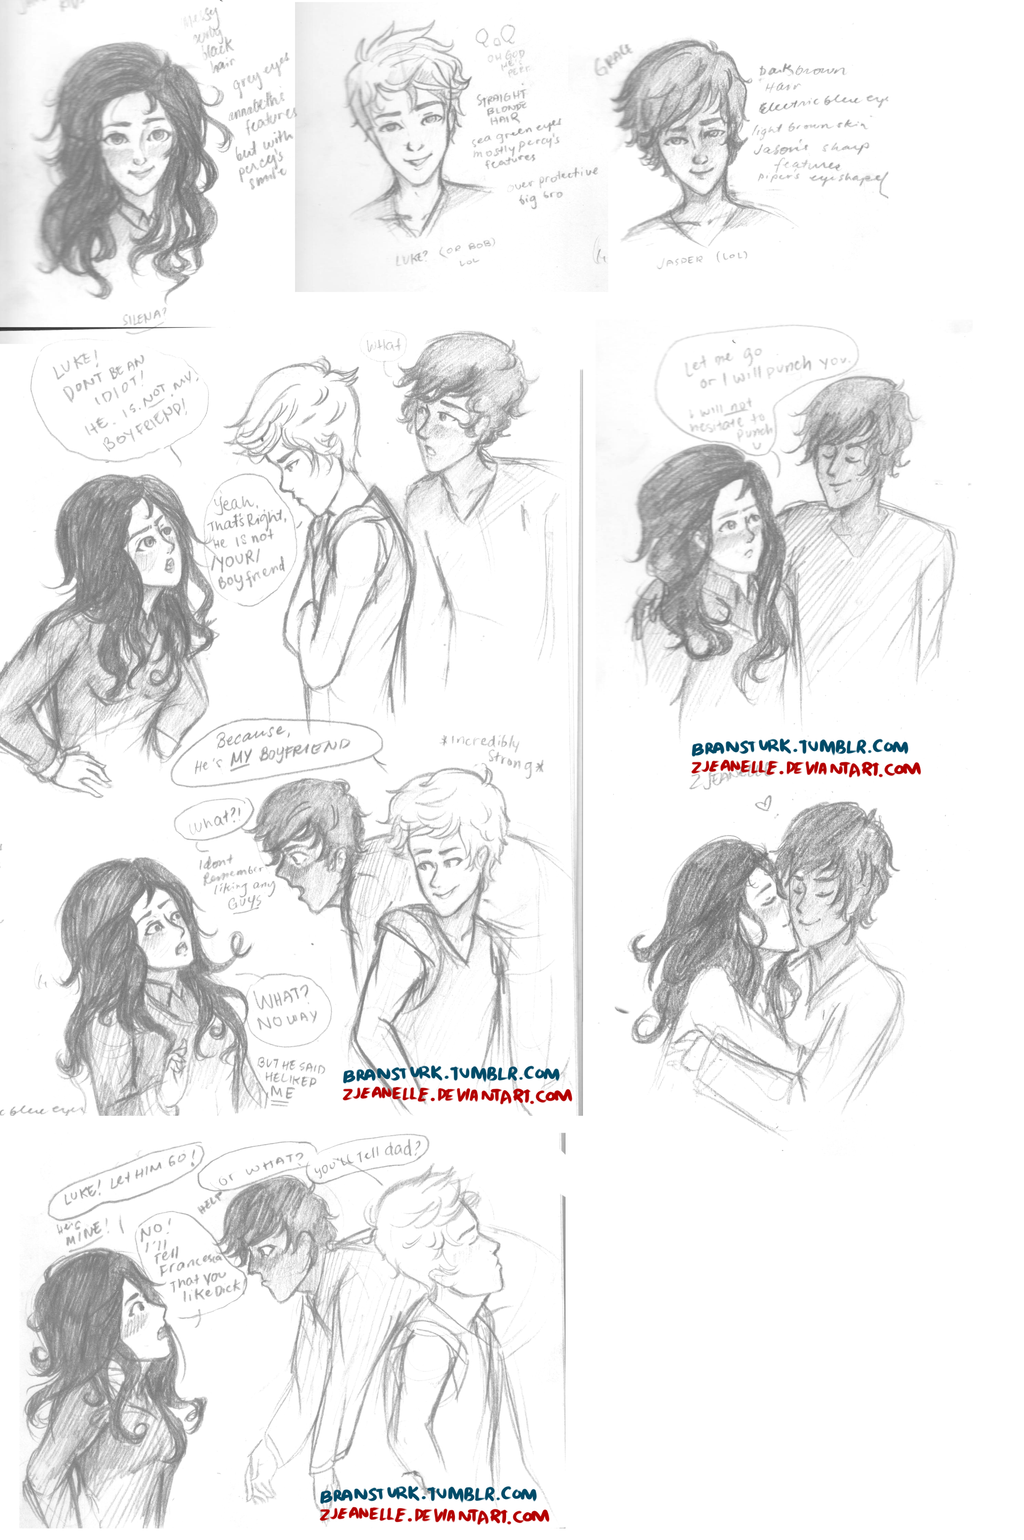 Pictures of Percy And Annabeth Make Love Fanfiction - #rock-cafe